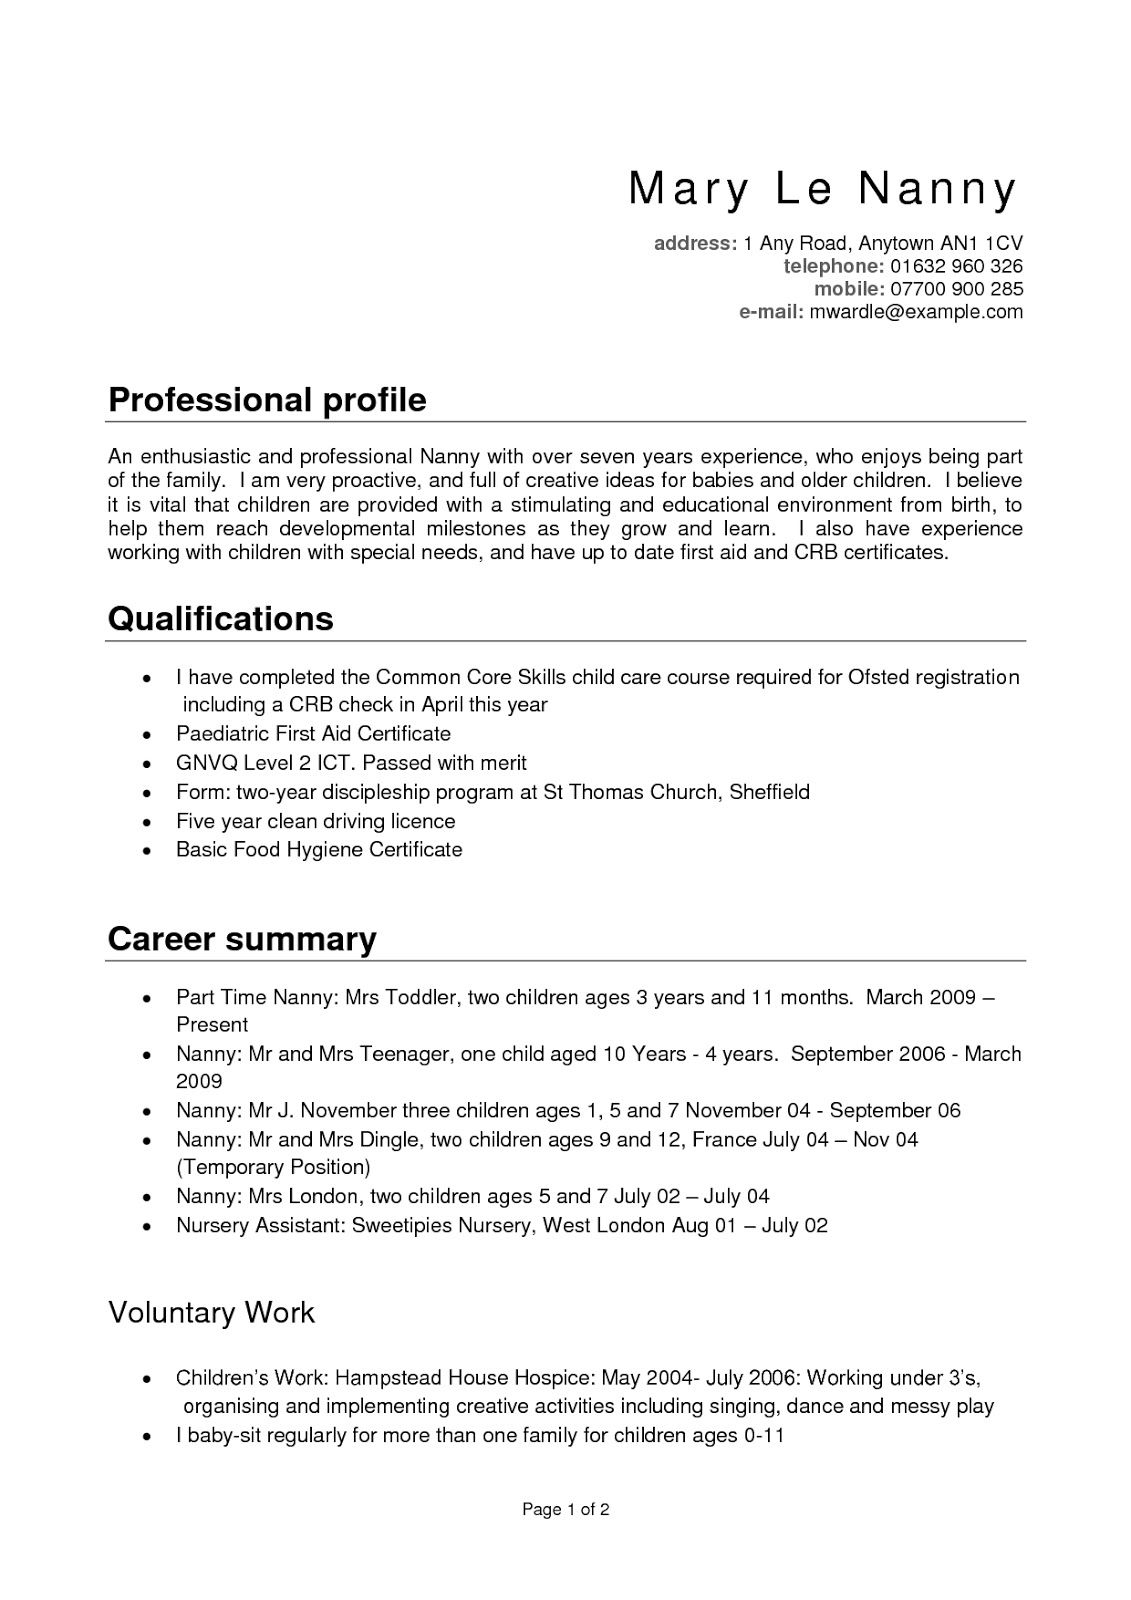 nanny resume templates free template re profile examples samples professional vitae vs Resume Nanny Resume Samples Free